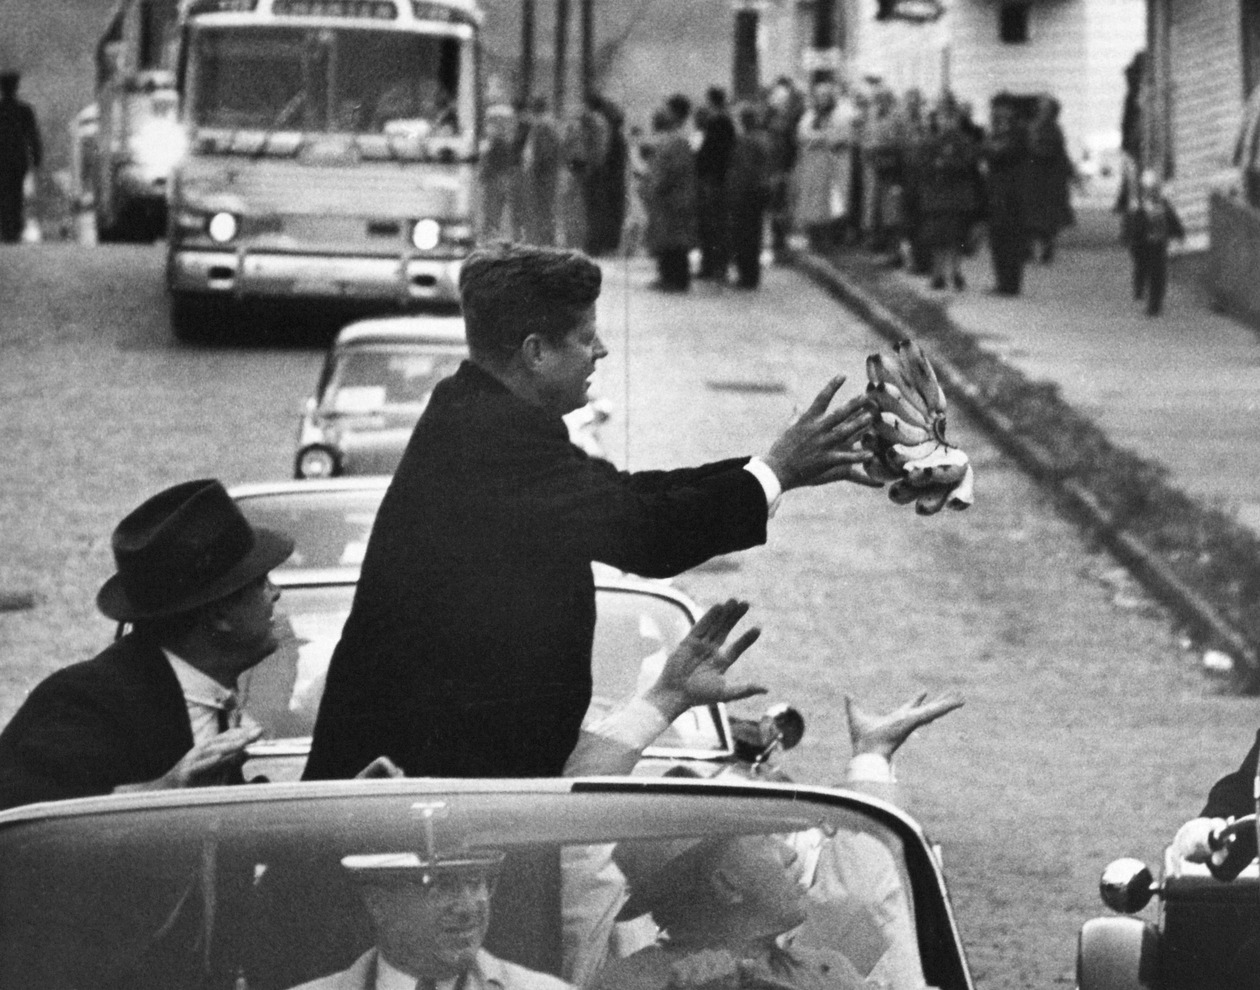 During the 1960 campaign, John F. Kennedy catches a bunch of bananas thrown to him by an admirer.